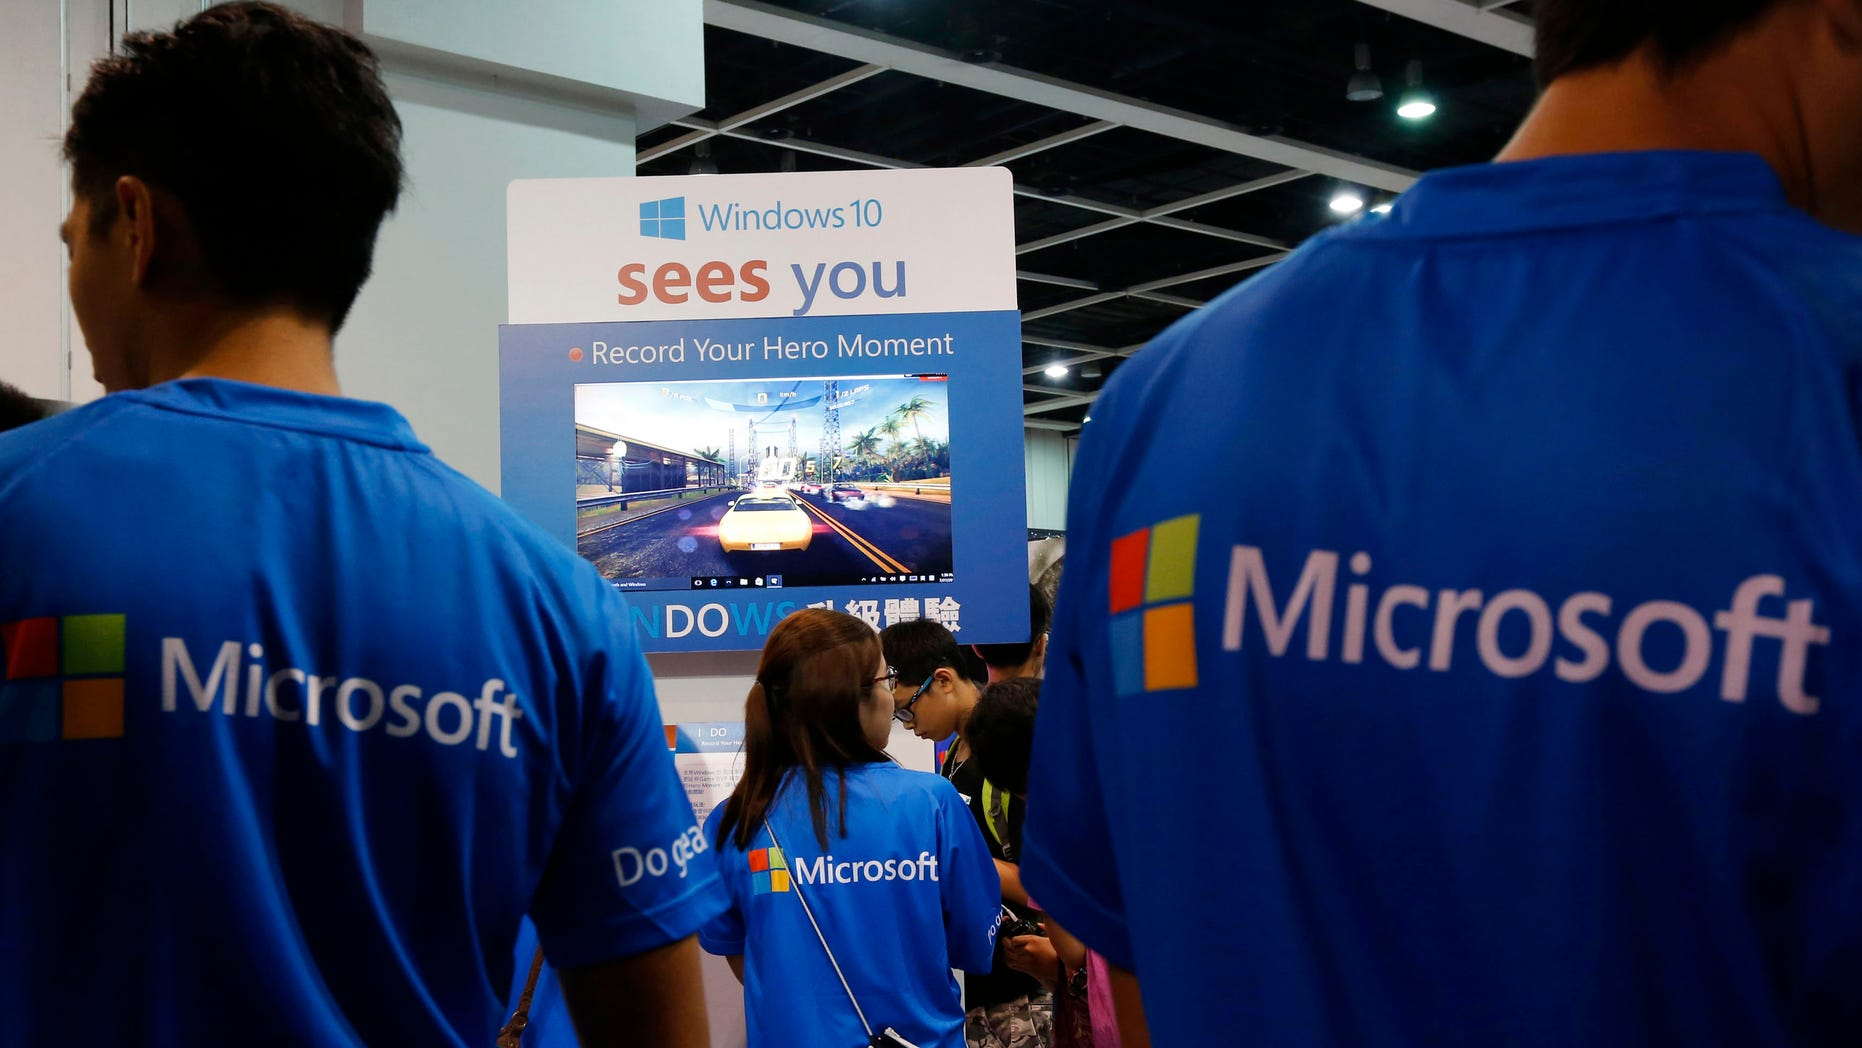 Promotional staff stand at the Microsoft Windows 10 booth two days before its global official launch at the Ani-Com & Games Hong Kong in Hong Kong, China, July 27, 2015.